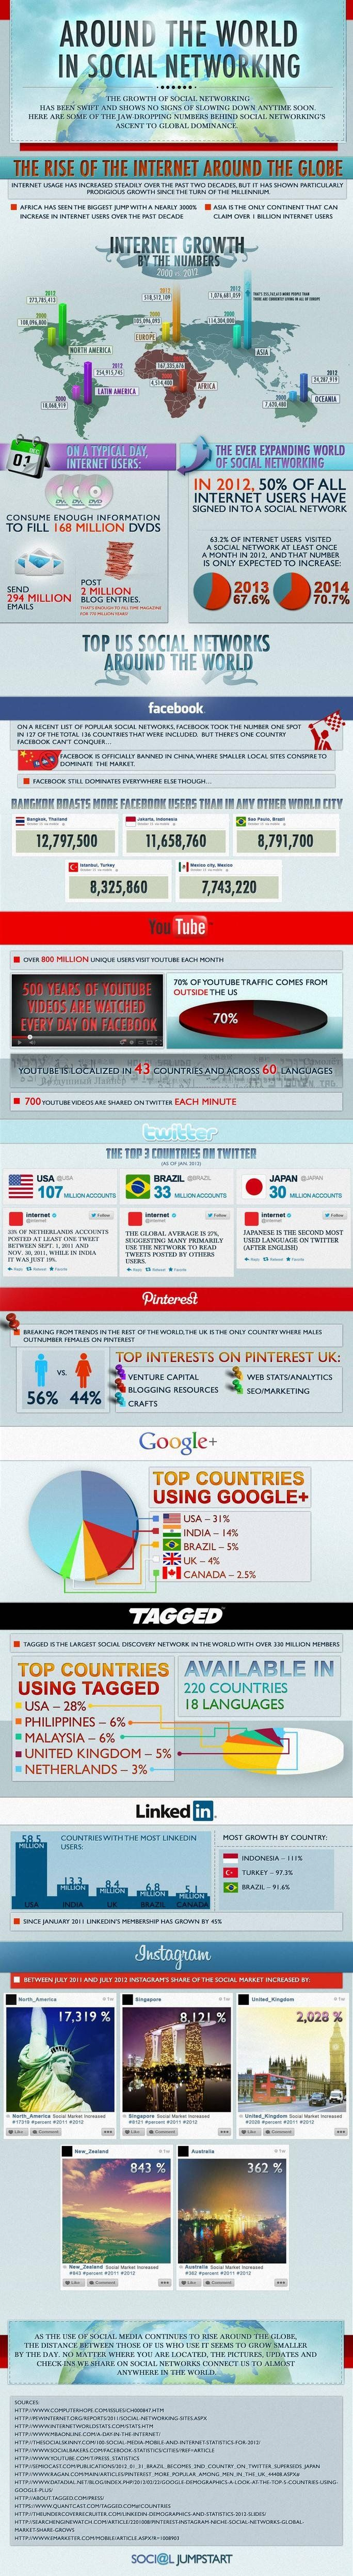 Around the world in social networking. #infographic #internet